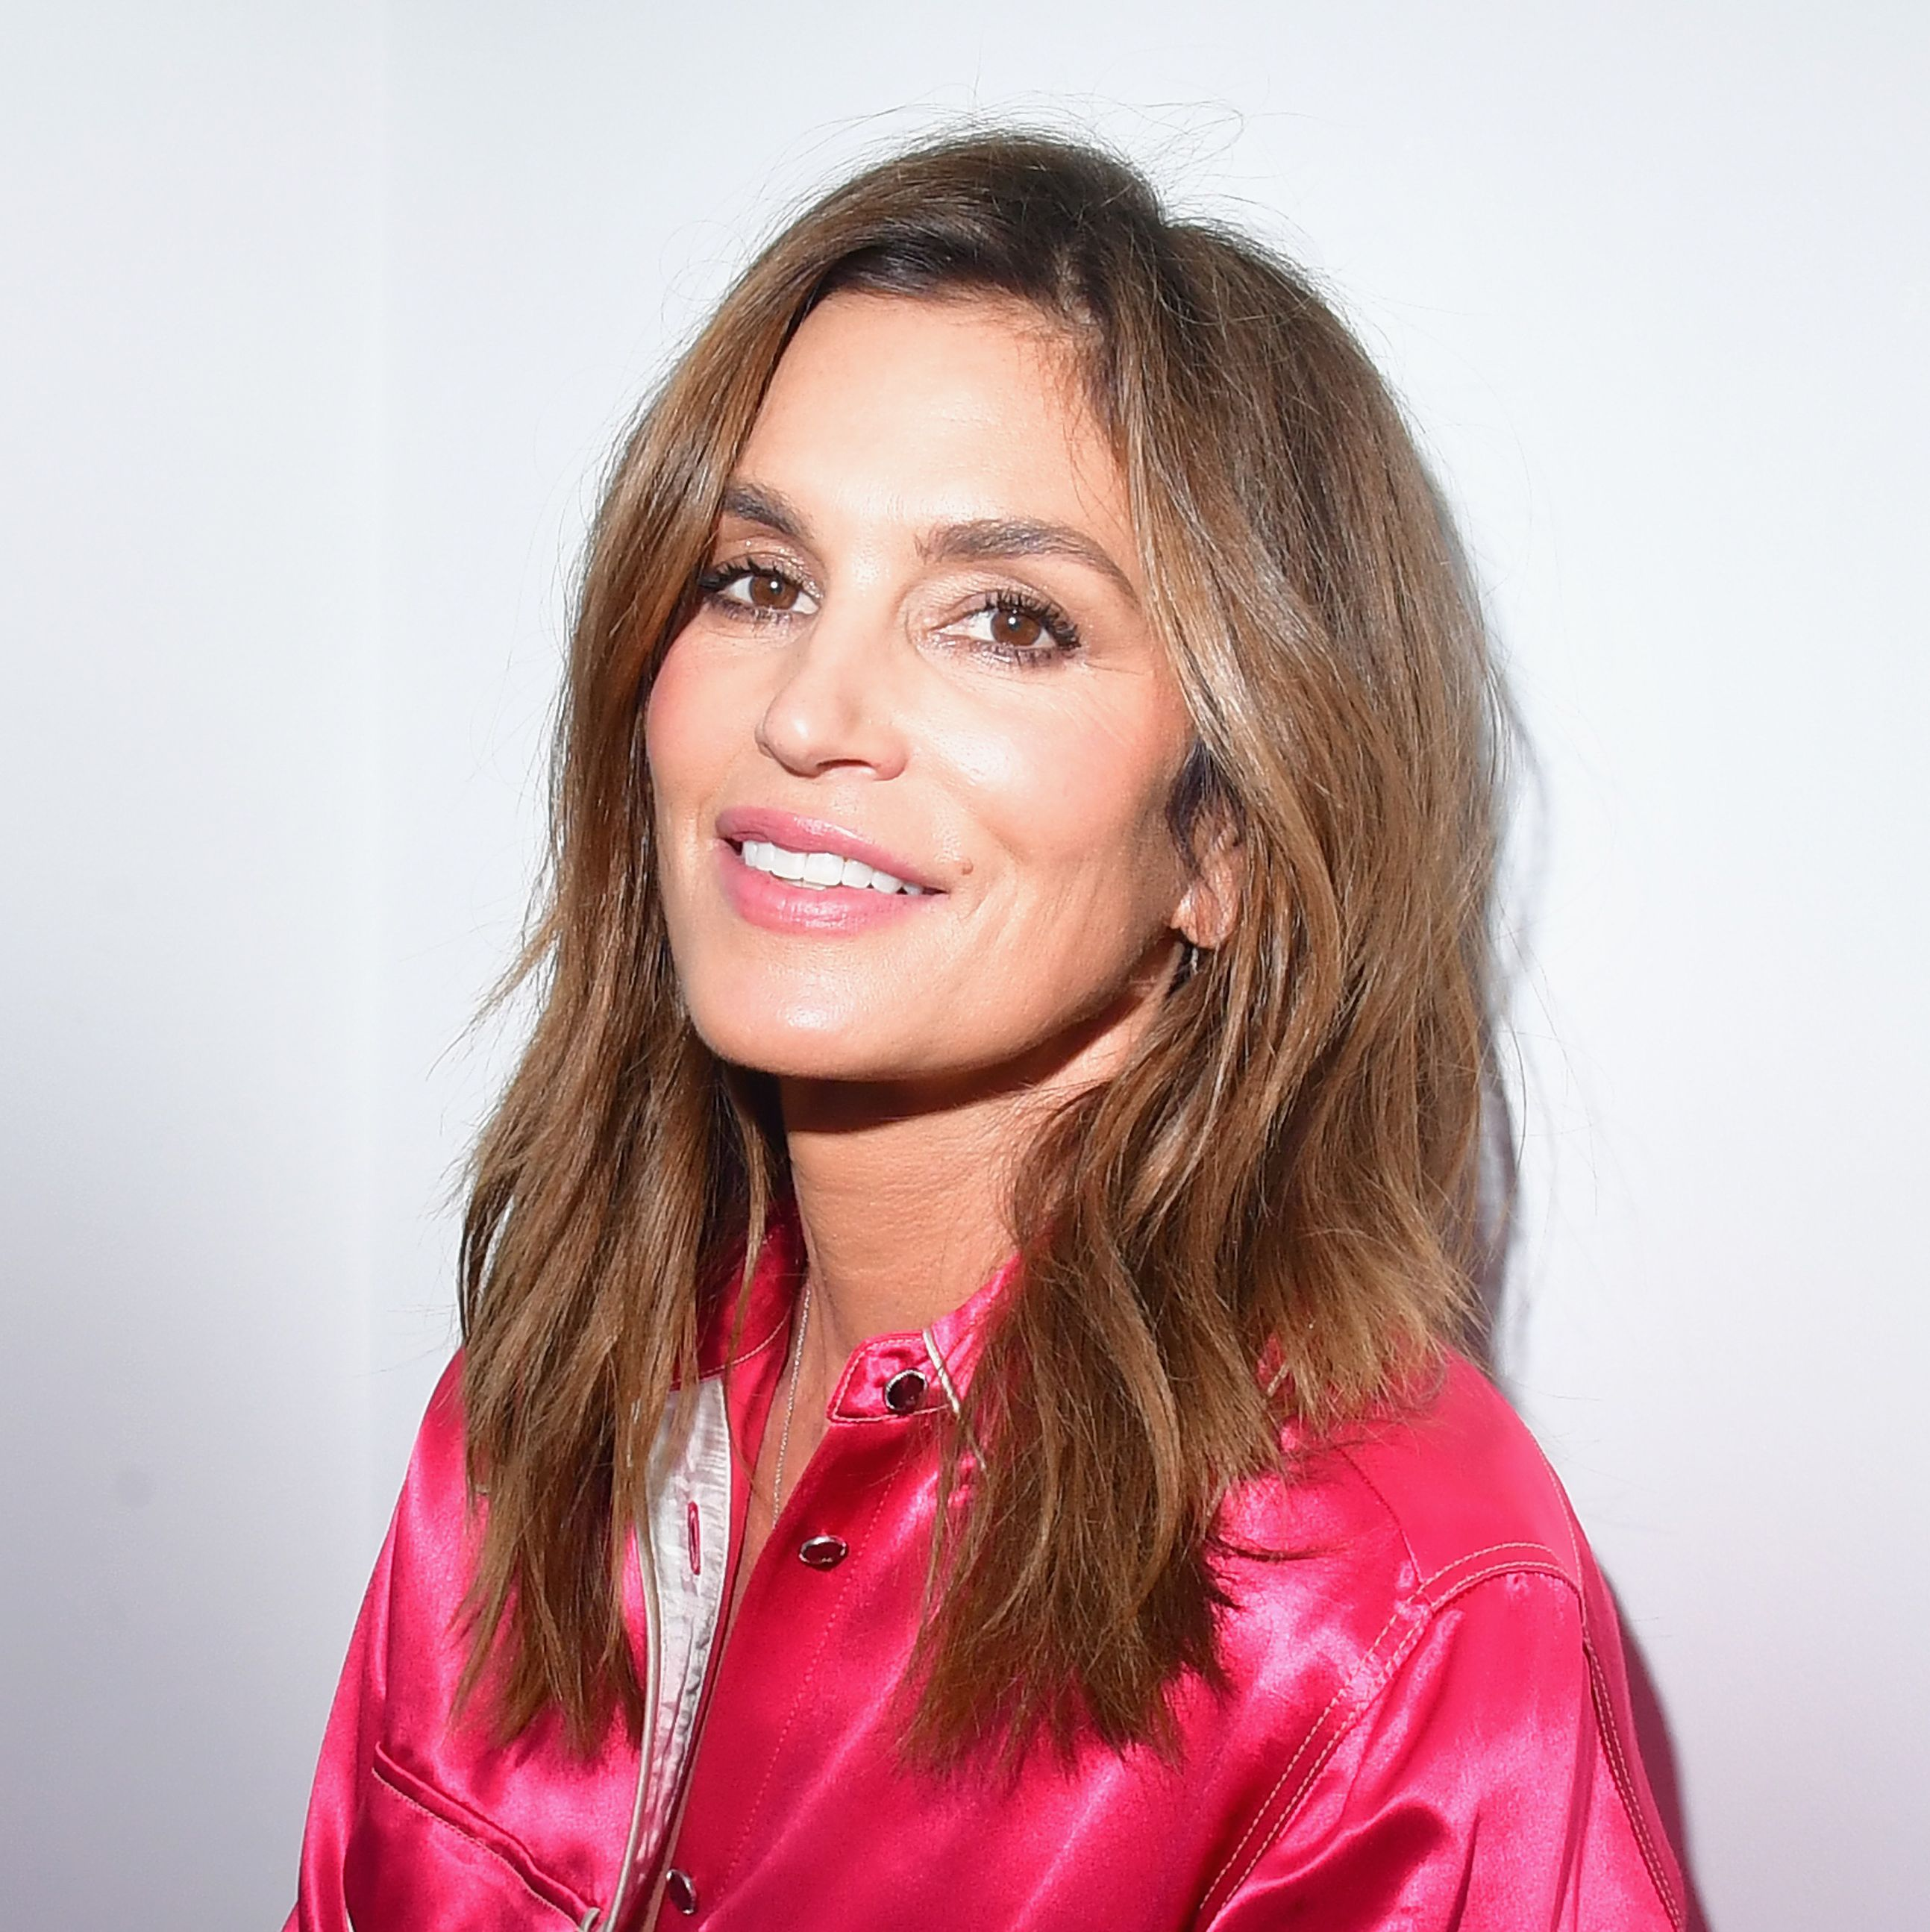 Cindy Crawford Turns 53 Today. Here's How She Looks Healthier and Younger Than Ever